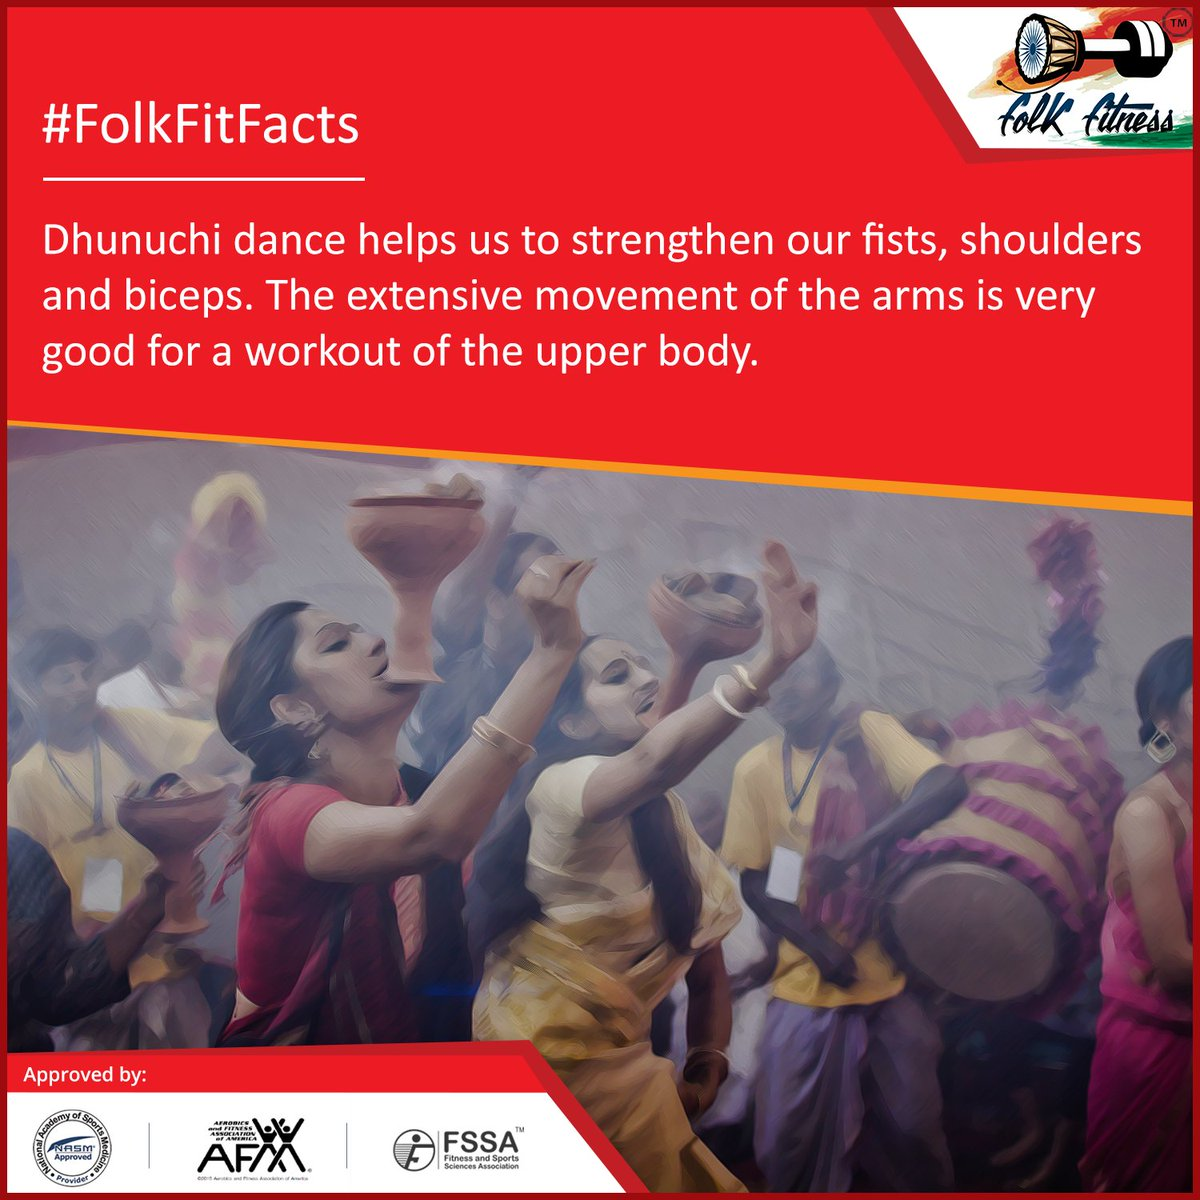 test Twitter Media - Apart from being an integral component of the #DurgaPuja, the #Dhunuchi #FolkDance has various other advantages.  #Navratri #FolkFitFacts https://t.co/2tpHL0WTIv